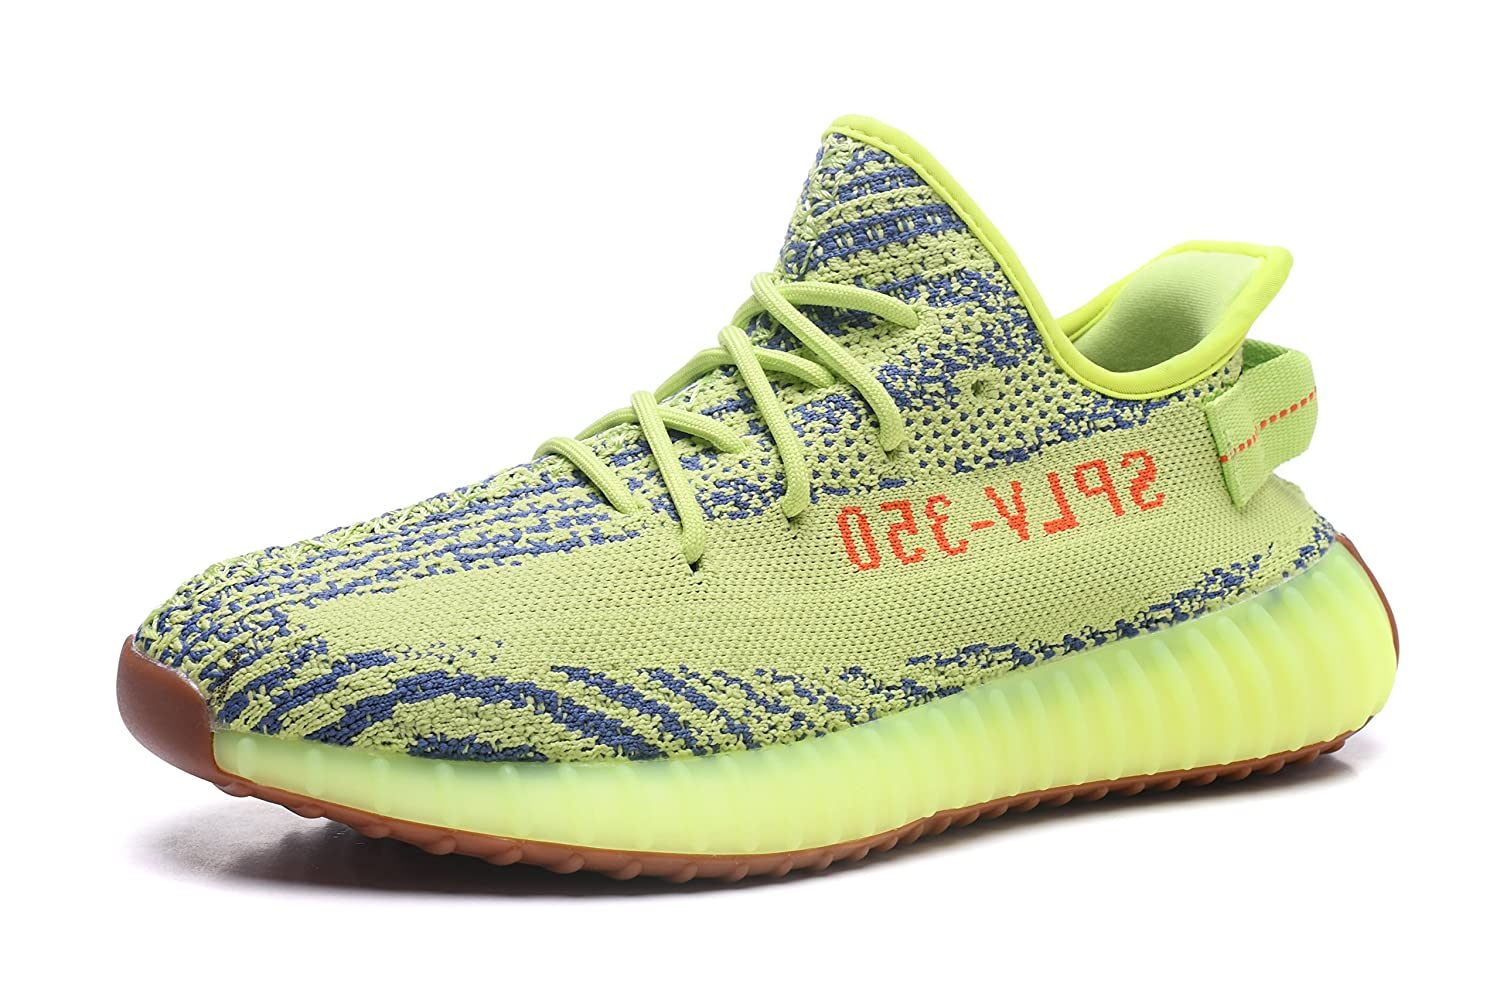 Mlle.Losian Unisex Outdoor Running Shoes Athletic Walking Shoes Breathable Sports Shoes for Women/Men B07FN8YB58 Men US 8 41 1/3 EU|Yellow